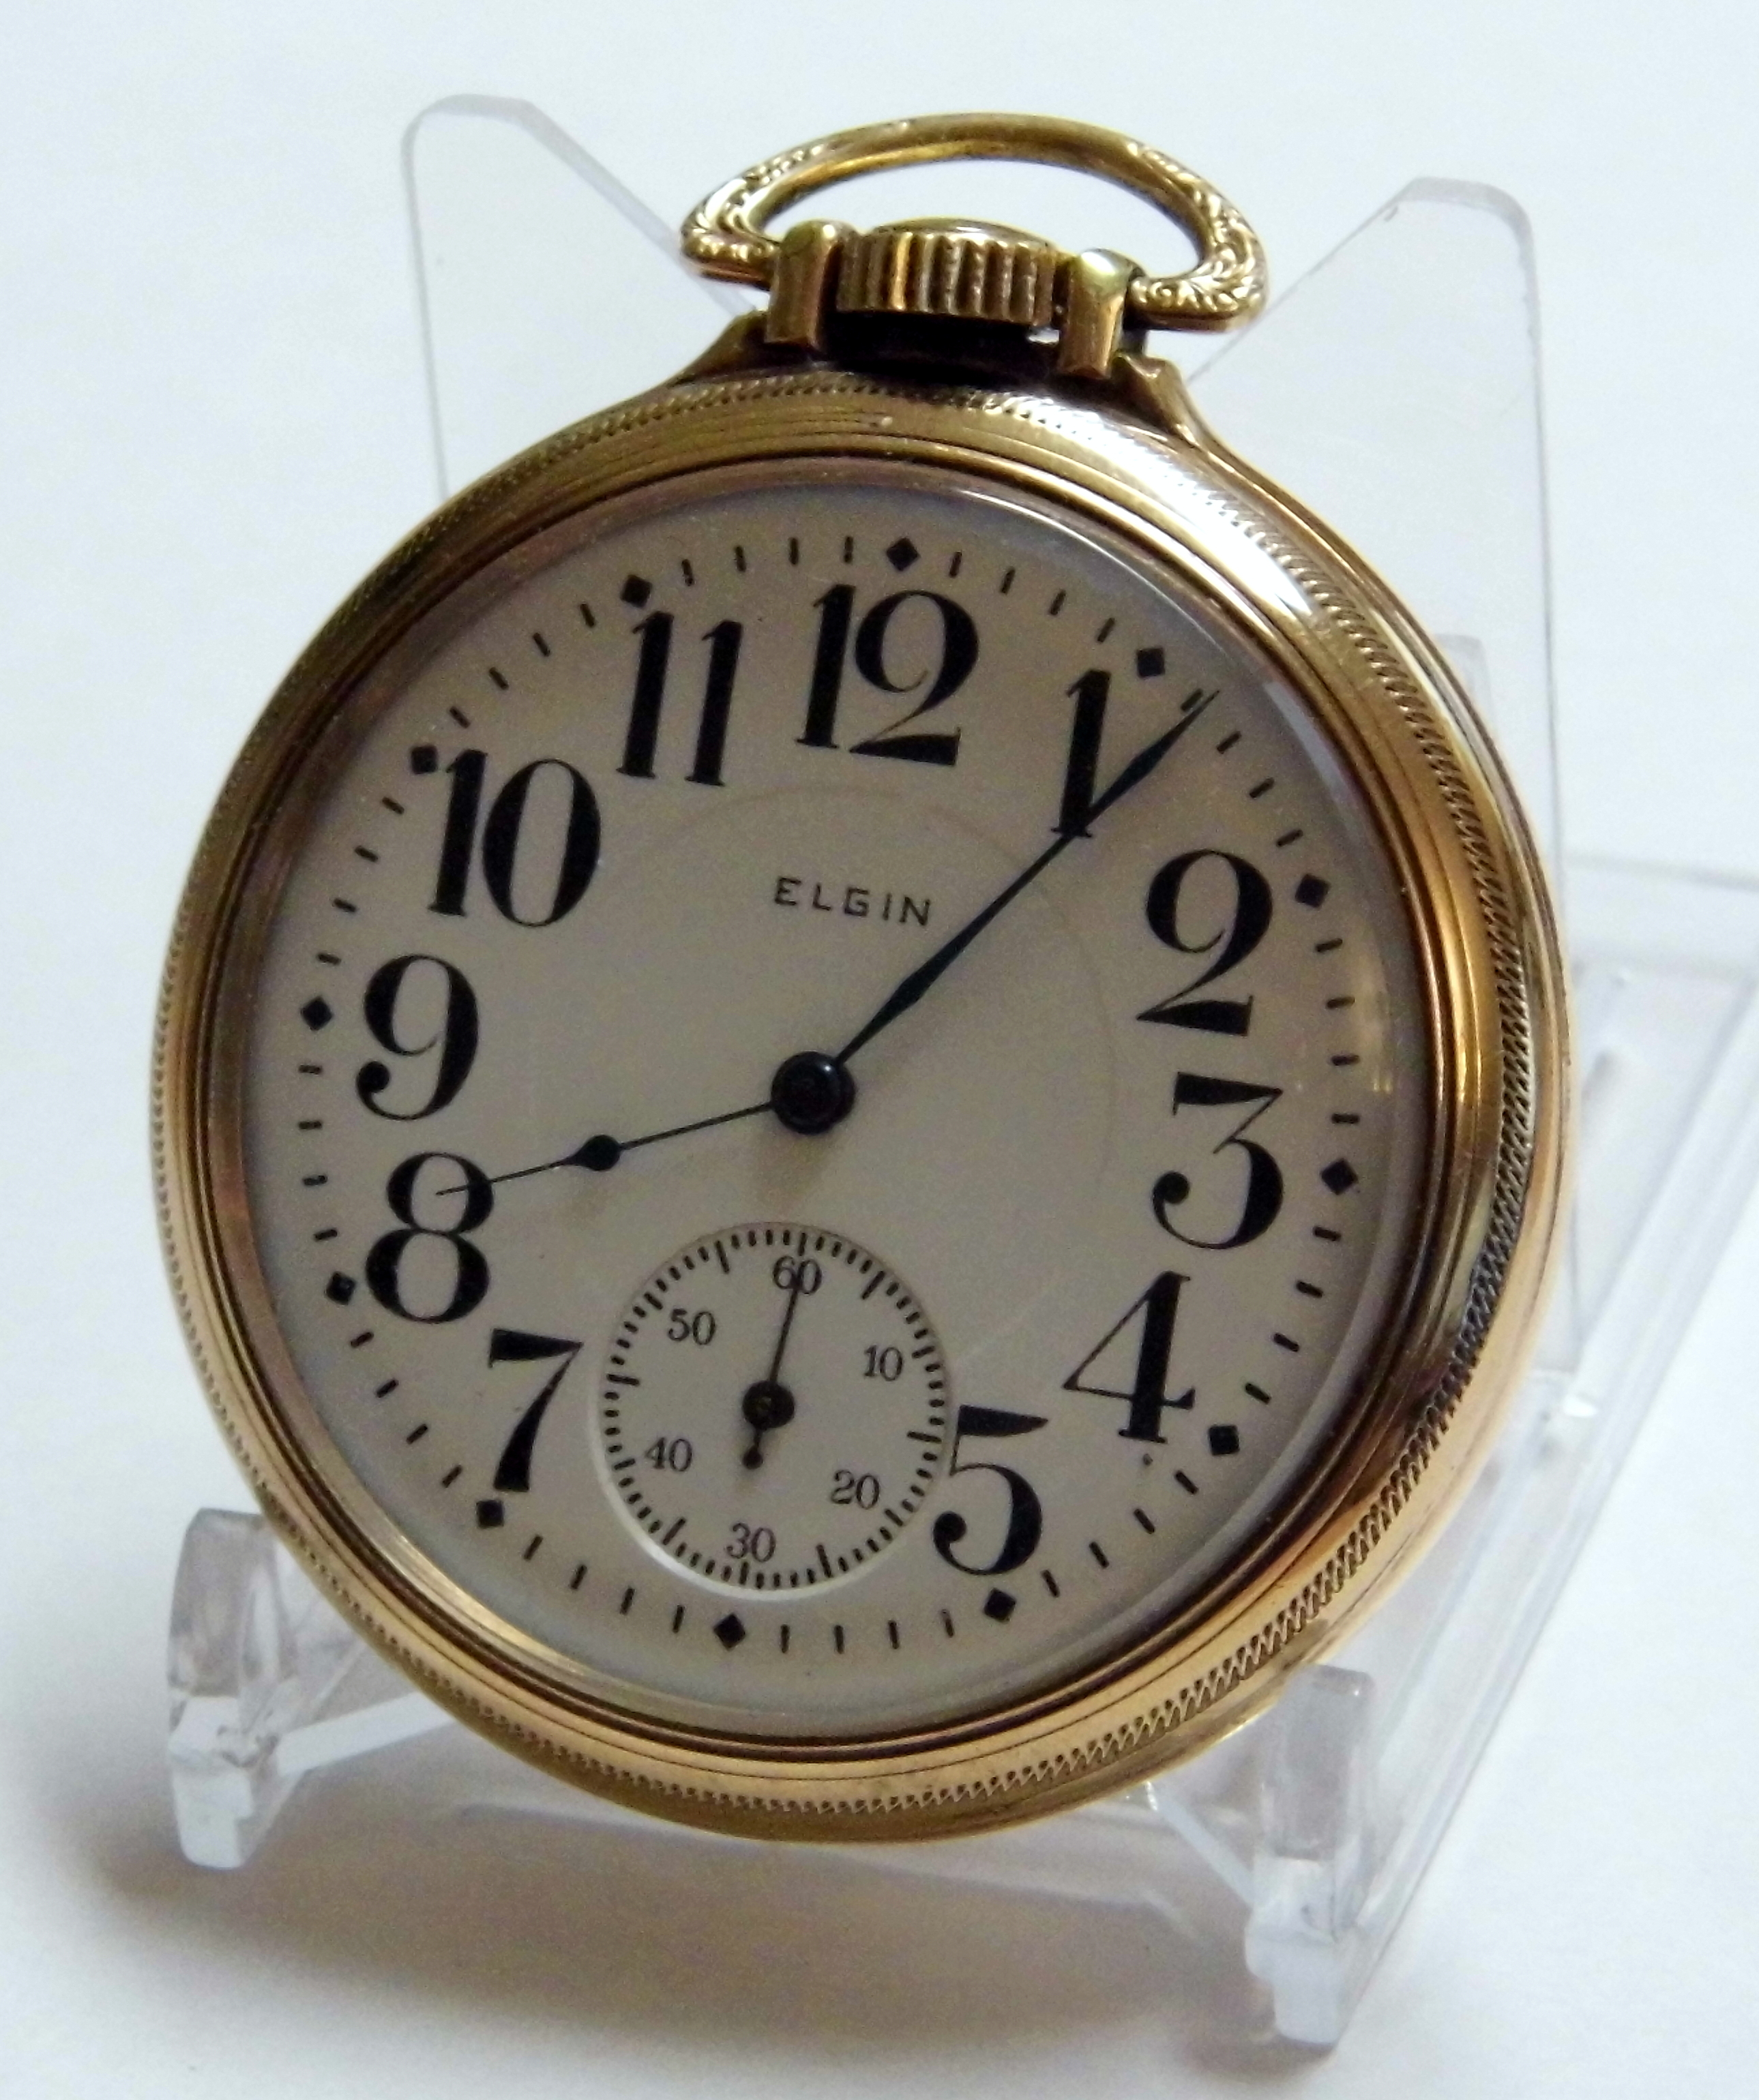 Elgin antique watch pocket dating picture